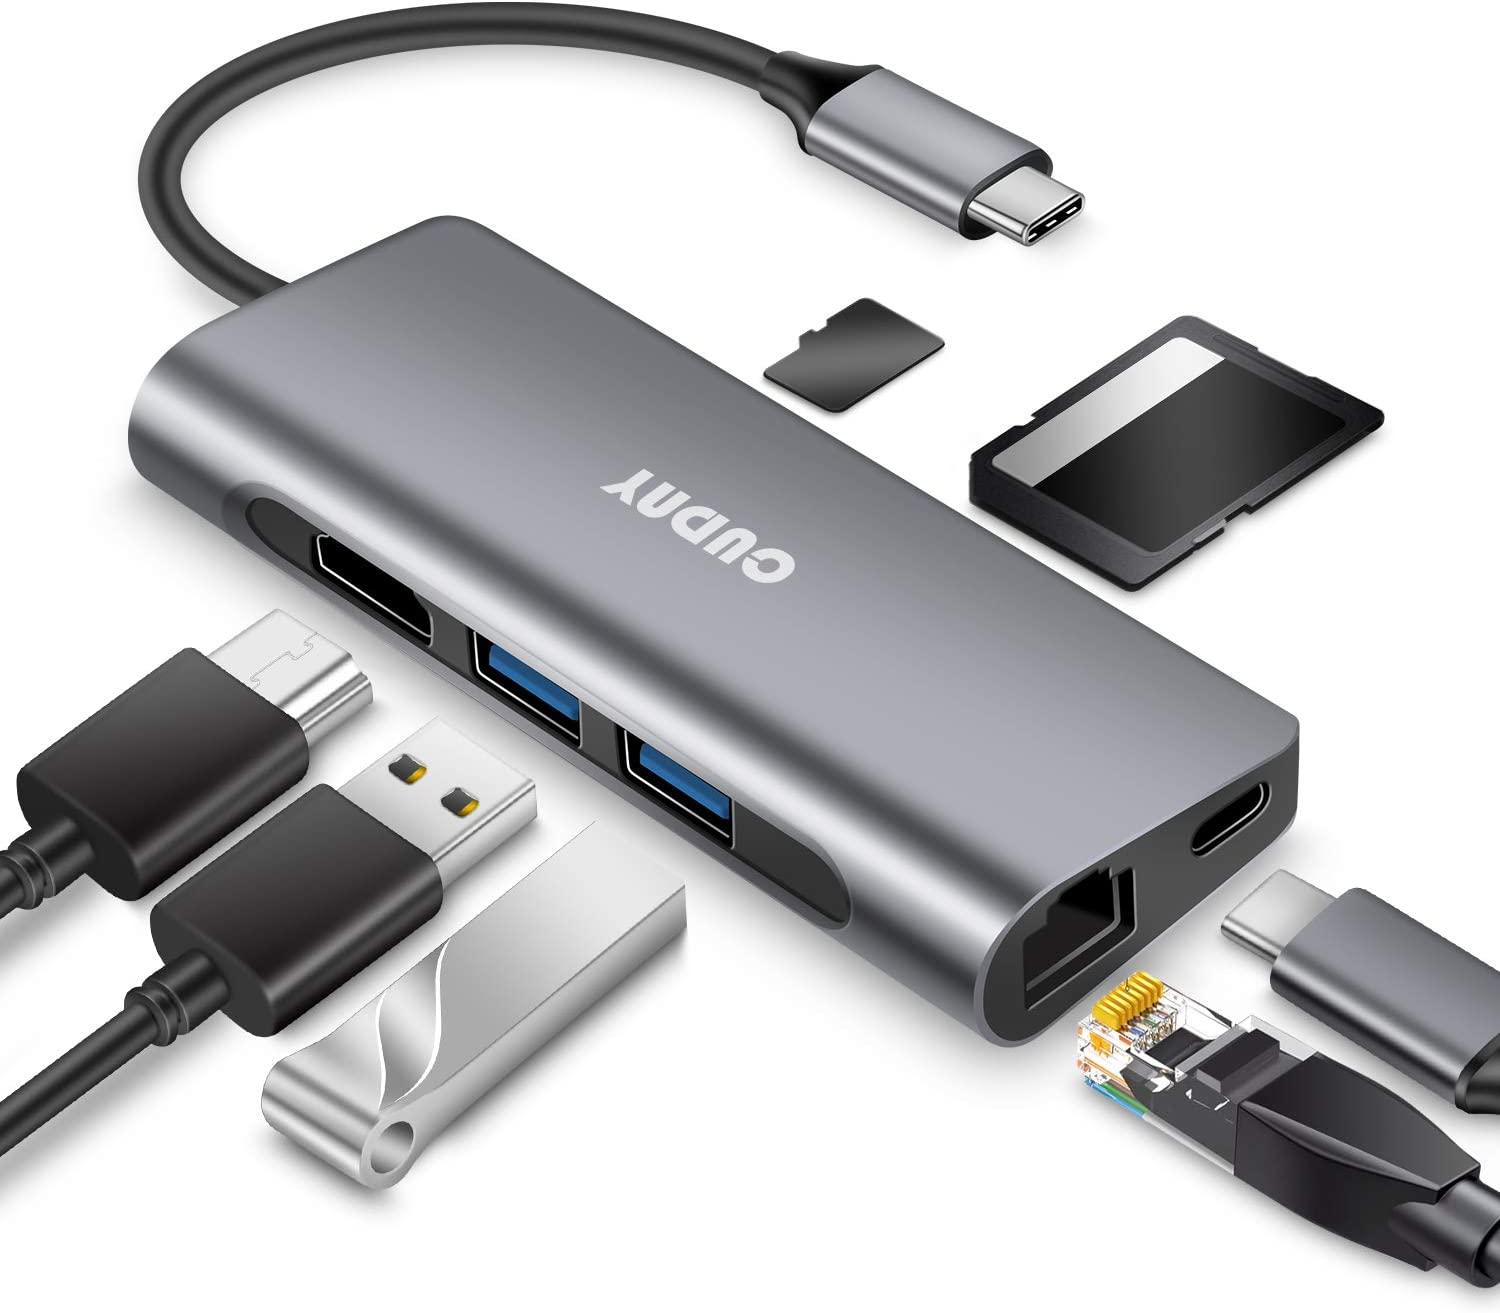 7-in-1 Adapter with Gigabit Ethernet